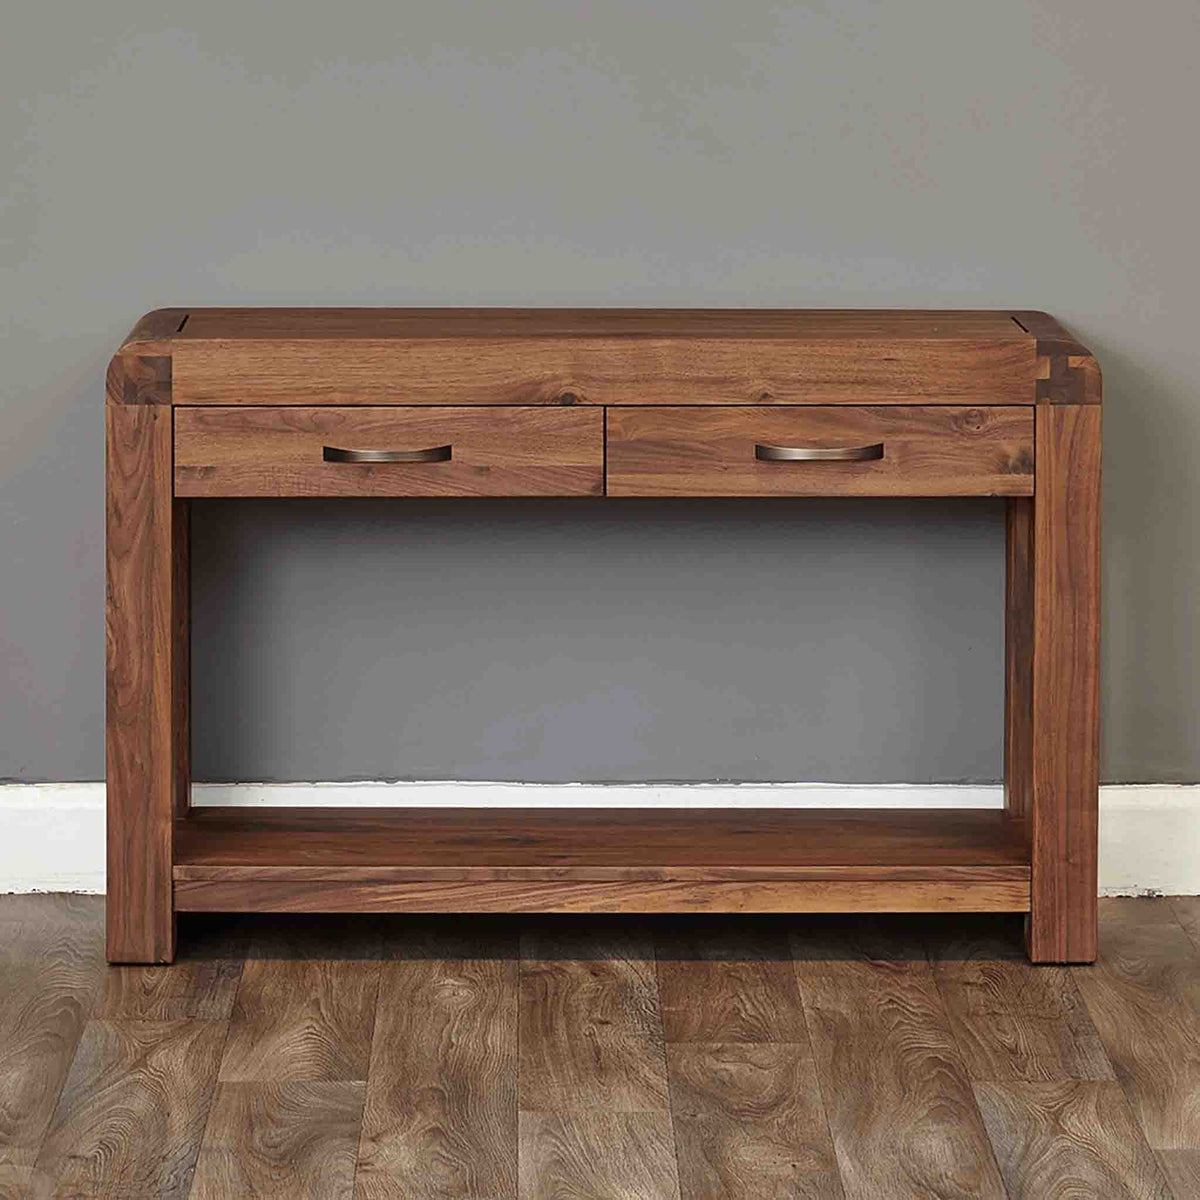 The Salem Walnut Large Wooden Hallway Console Table with 2 Drawers from Roseland Furniture